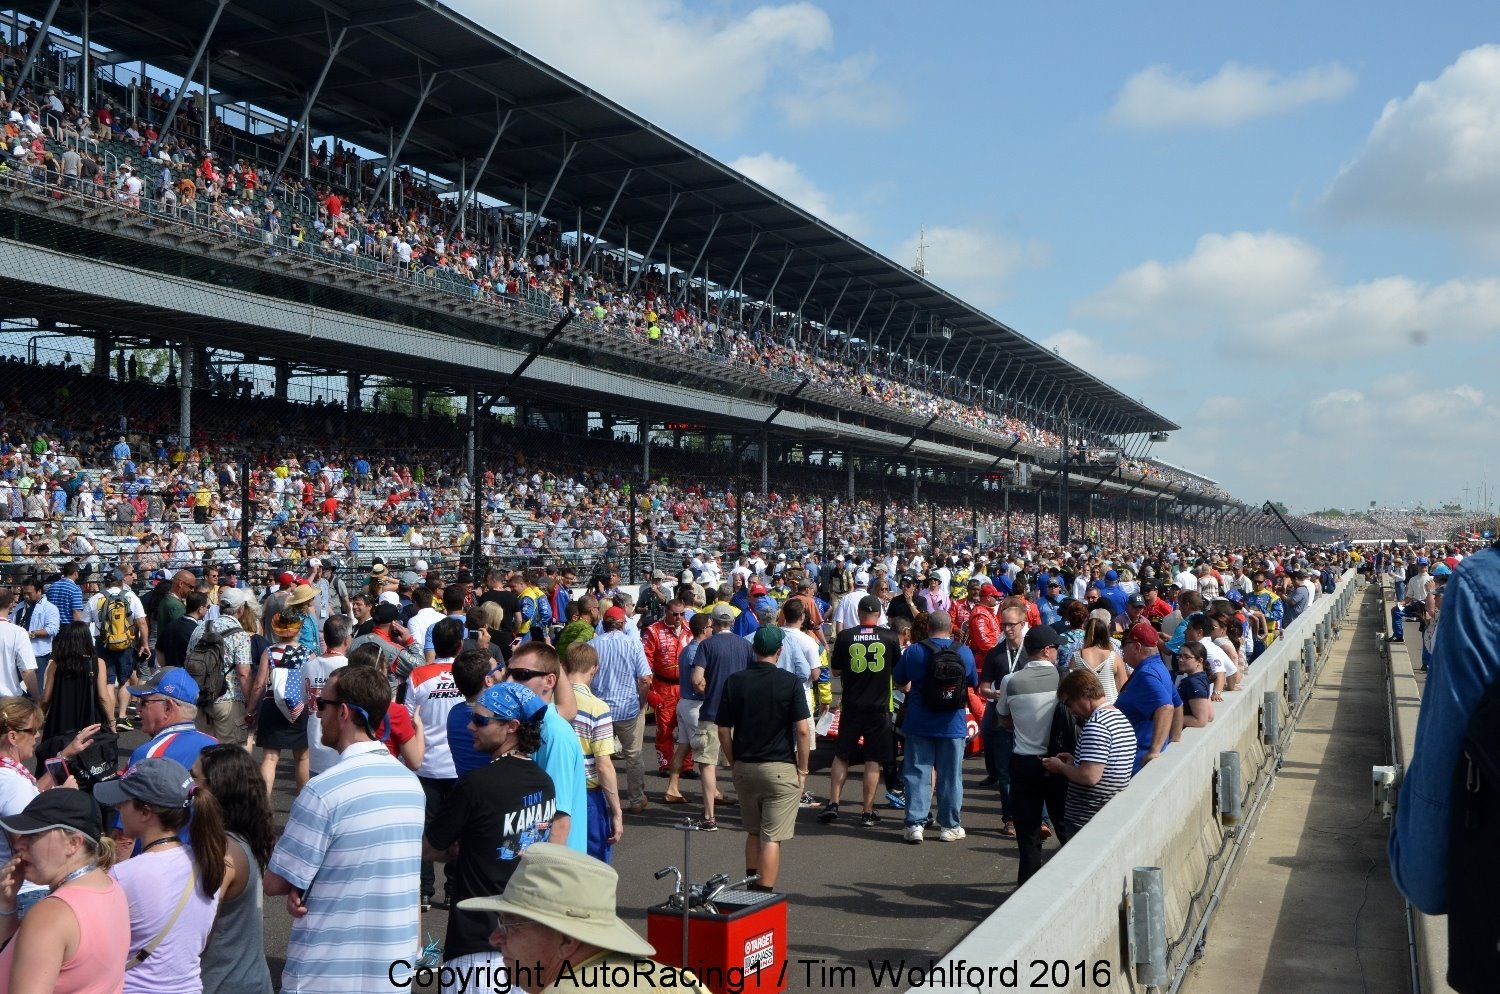 Another huge crowd expected for Indy 500